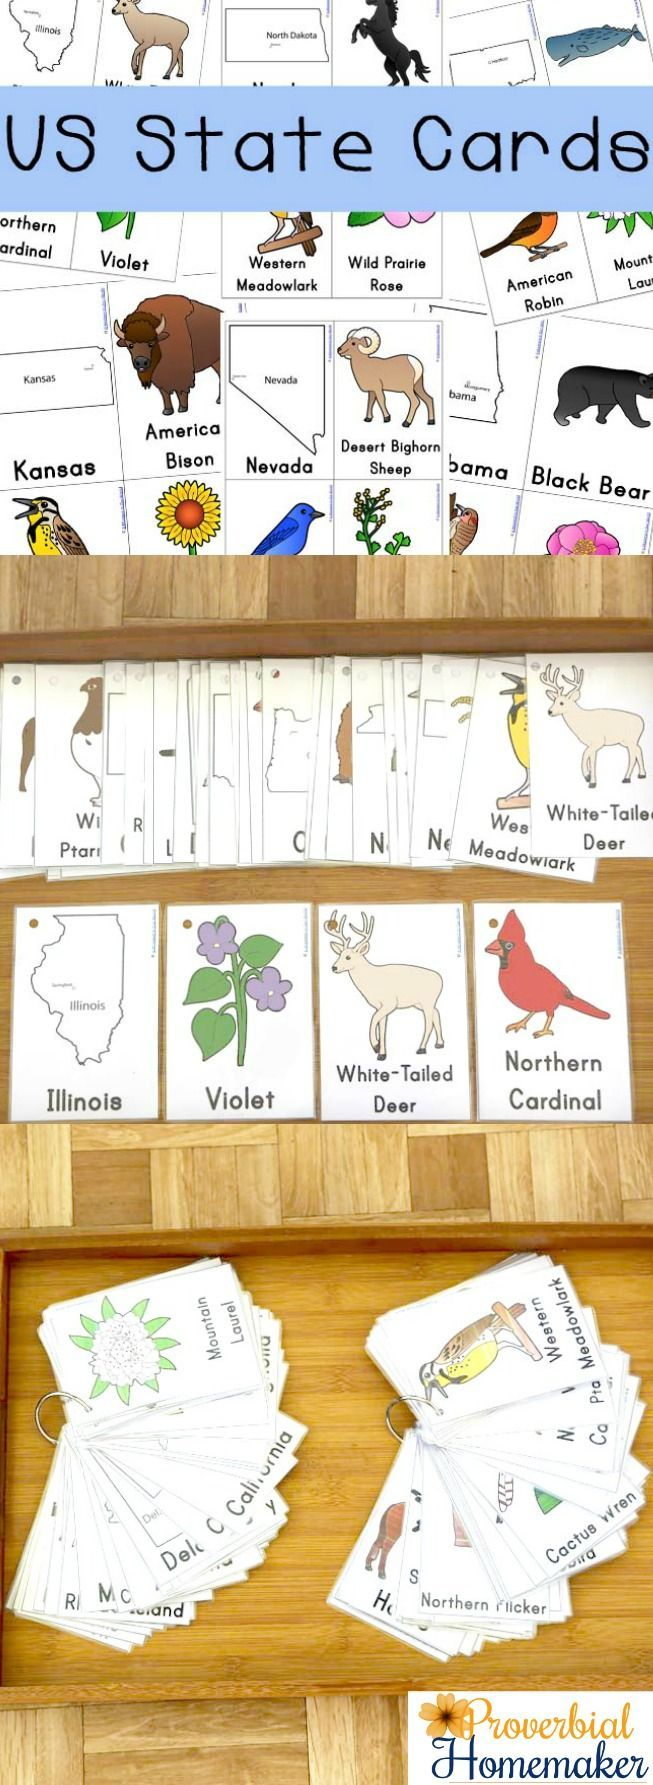 Download these free U.S. State Flash Cards for a fun and easy way to learn each state, including the state flower, animal, and bird!